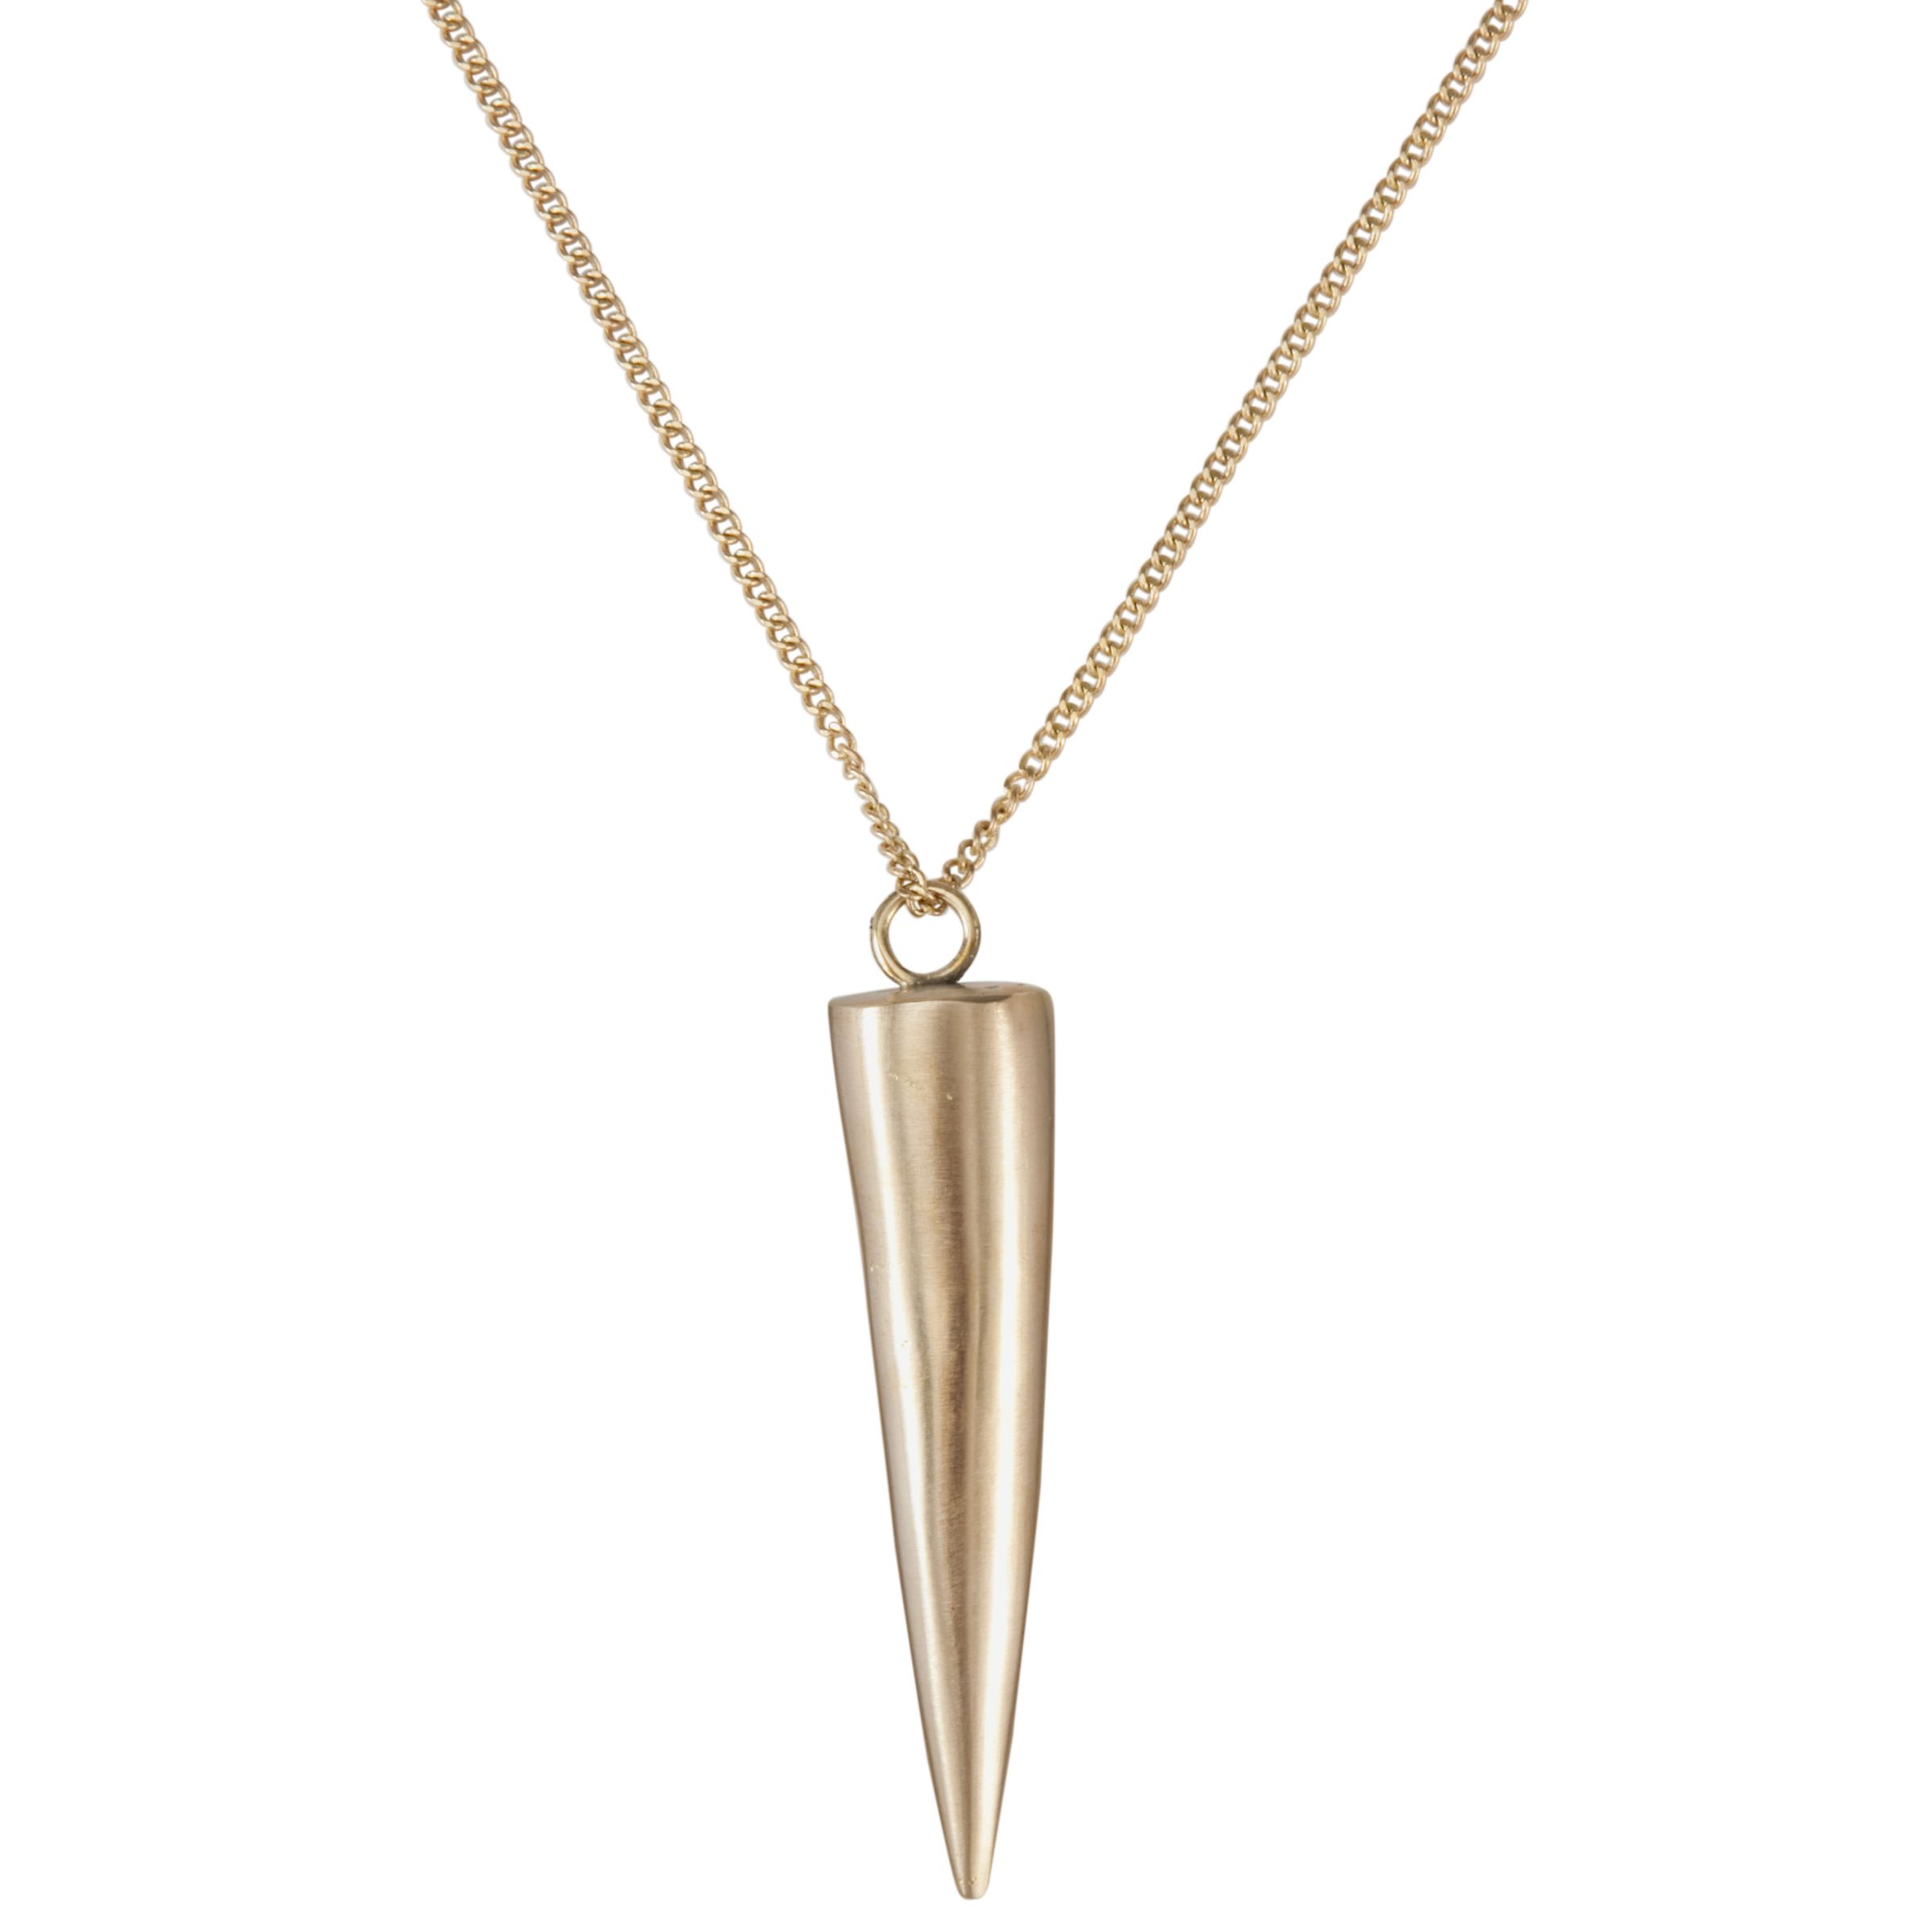 Made Large Brass Cone Pendant Necklace